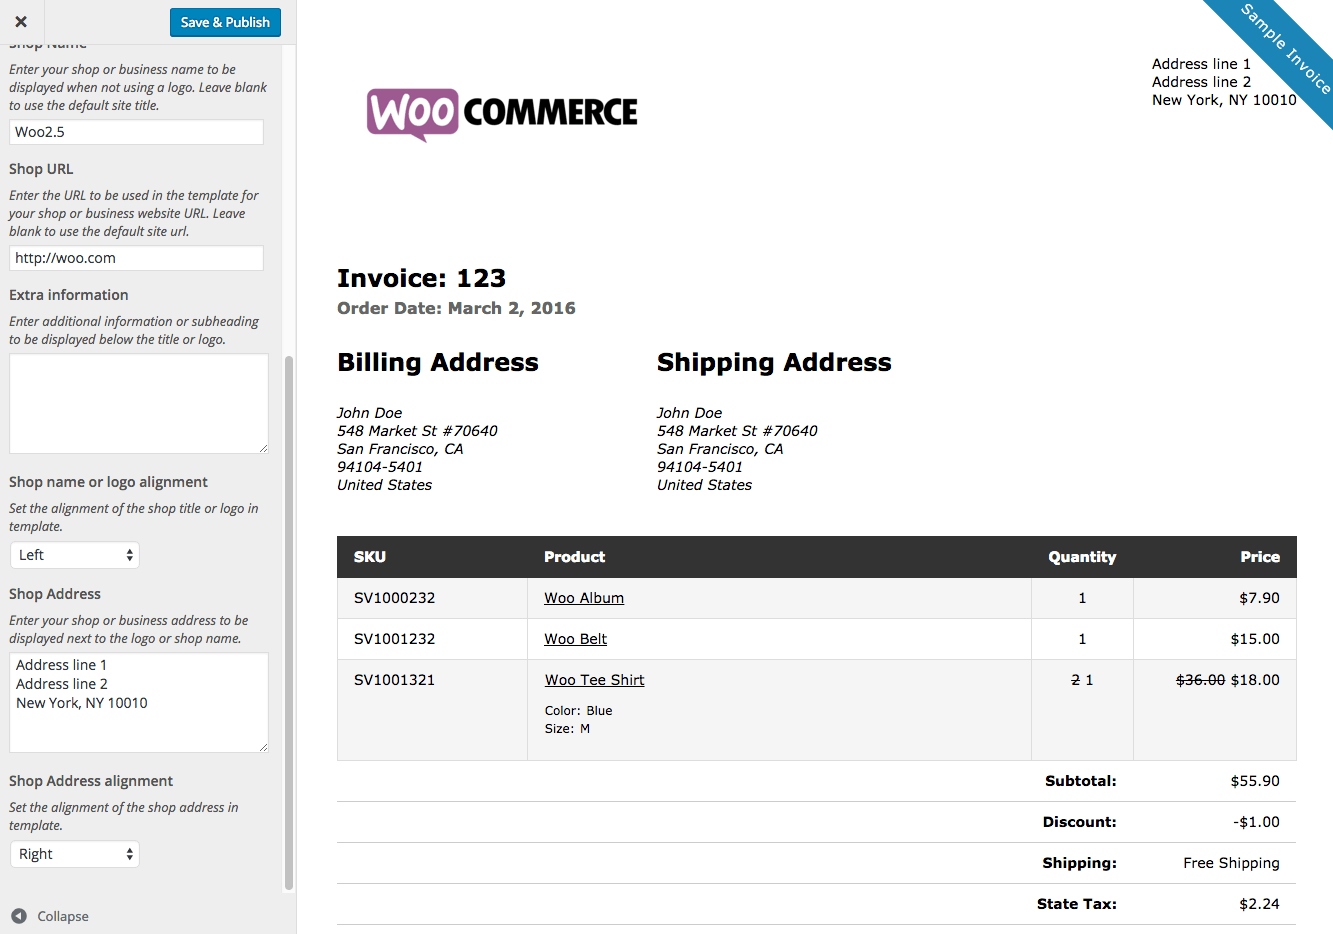 Usdgus  Nice Print Invoices Amp Packing Lists  Woocommerce With Lovable Woocommerce Print Invoices  Packing Lists Customizer With Captivating Ikea Returns Policy No Receipt Also Examples Of Cash Receipts Journal In Addition Definition Of A Receipt And What Is Cash Receipts In Accounting As Well As Company Receipt Sample Additionally Pork Receipts From Woocommercecom With Usdgus  Lovable Print Invoices Amp Packing Lists  Woocommerce With Captivating Woocommerce Print Invoices  Packing Lists Customizer And Nice Ikea Returns Policy No Receipt Also Examples Of Cash Receipts Journal In Addition Definition Of A Receipt From Woocommercecom